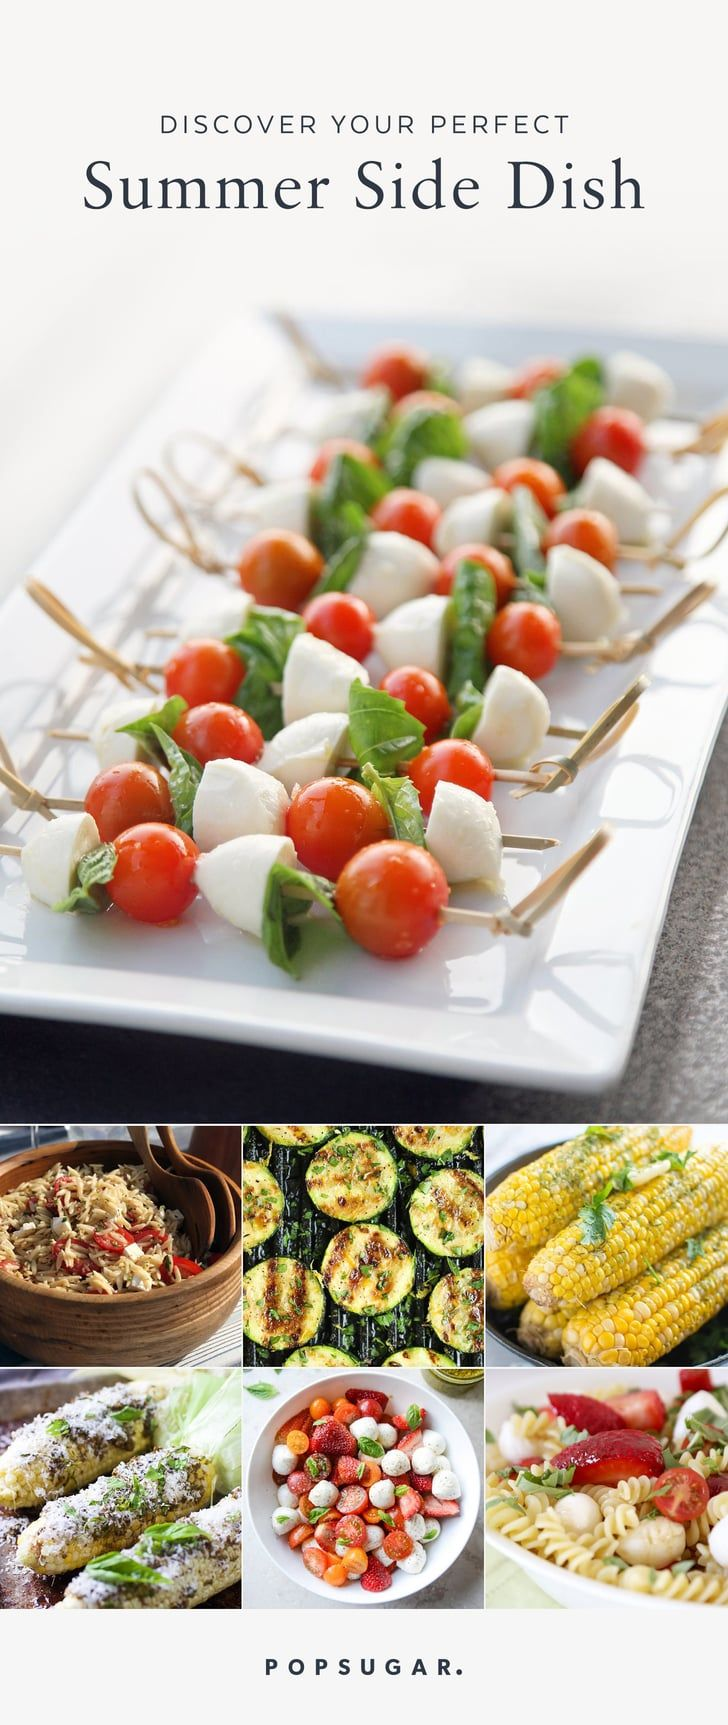 Every great grilling recipe calls for an equally great side dish. These recipes will be the star of any summertime meal, guaranteed to please (and feed) a crowd. From easy pasta salads to dishes starring fresh tomatoes, these will become your go-to side dishes while the weather is warm.